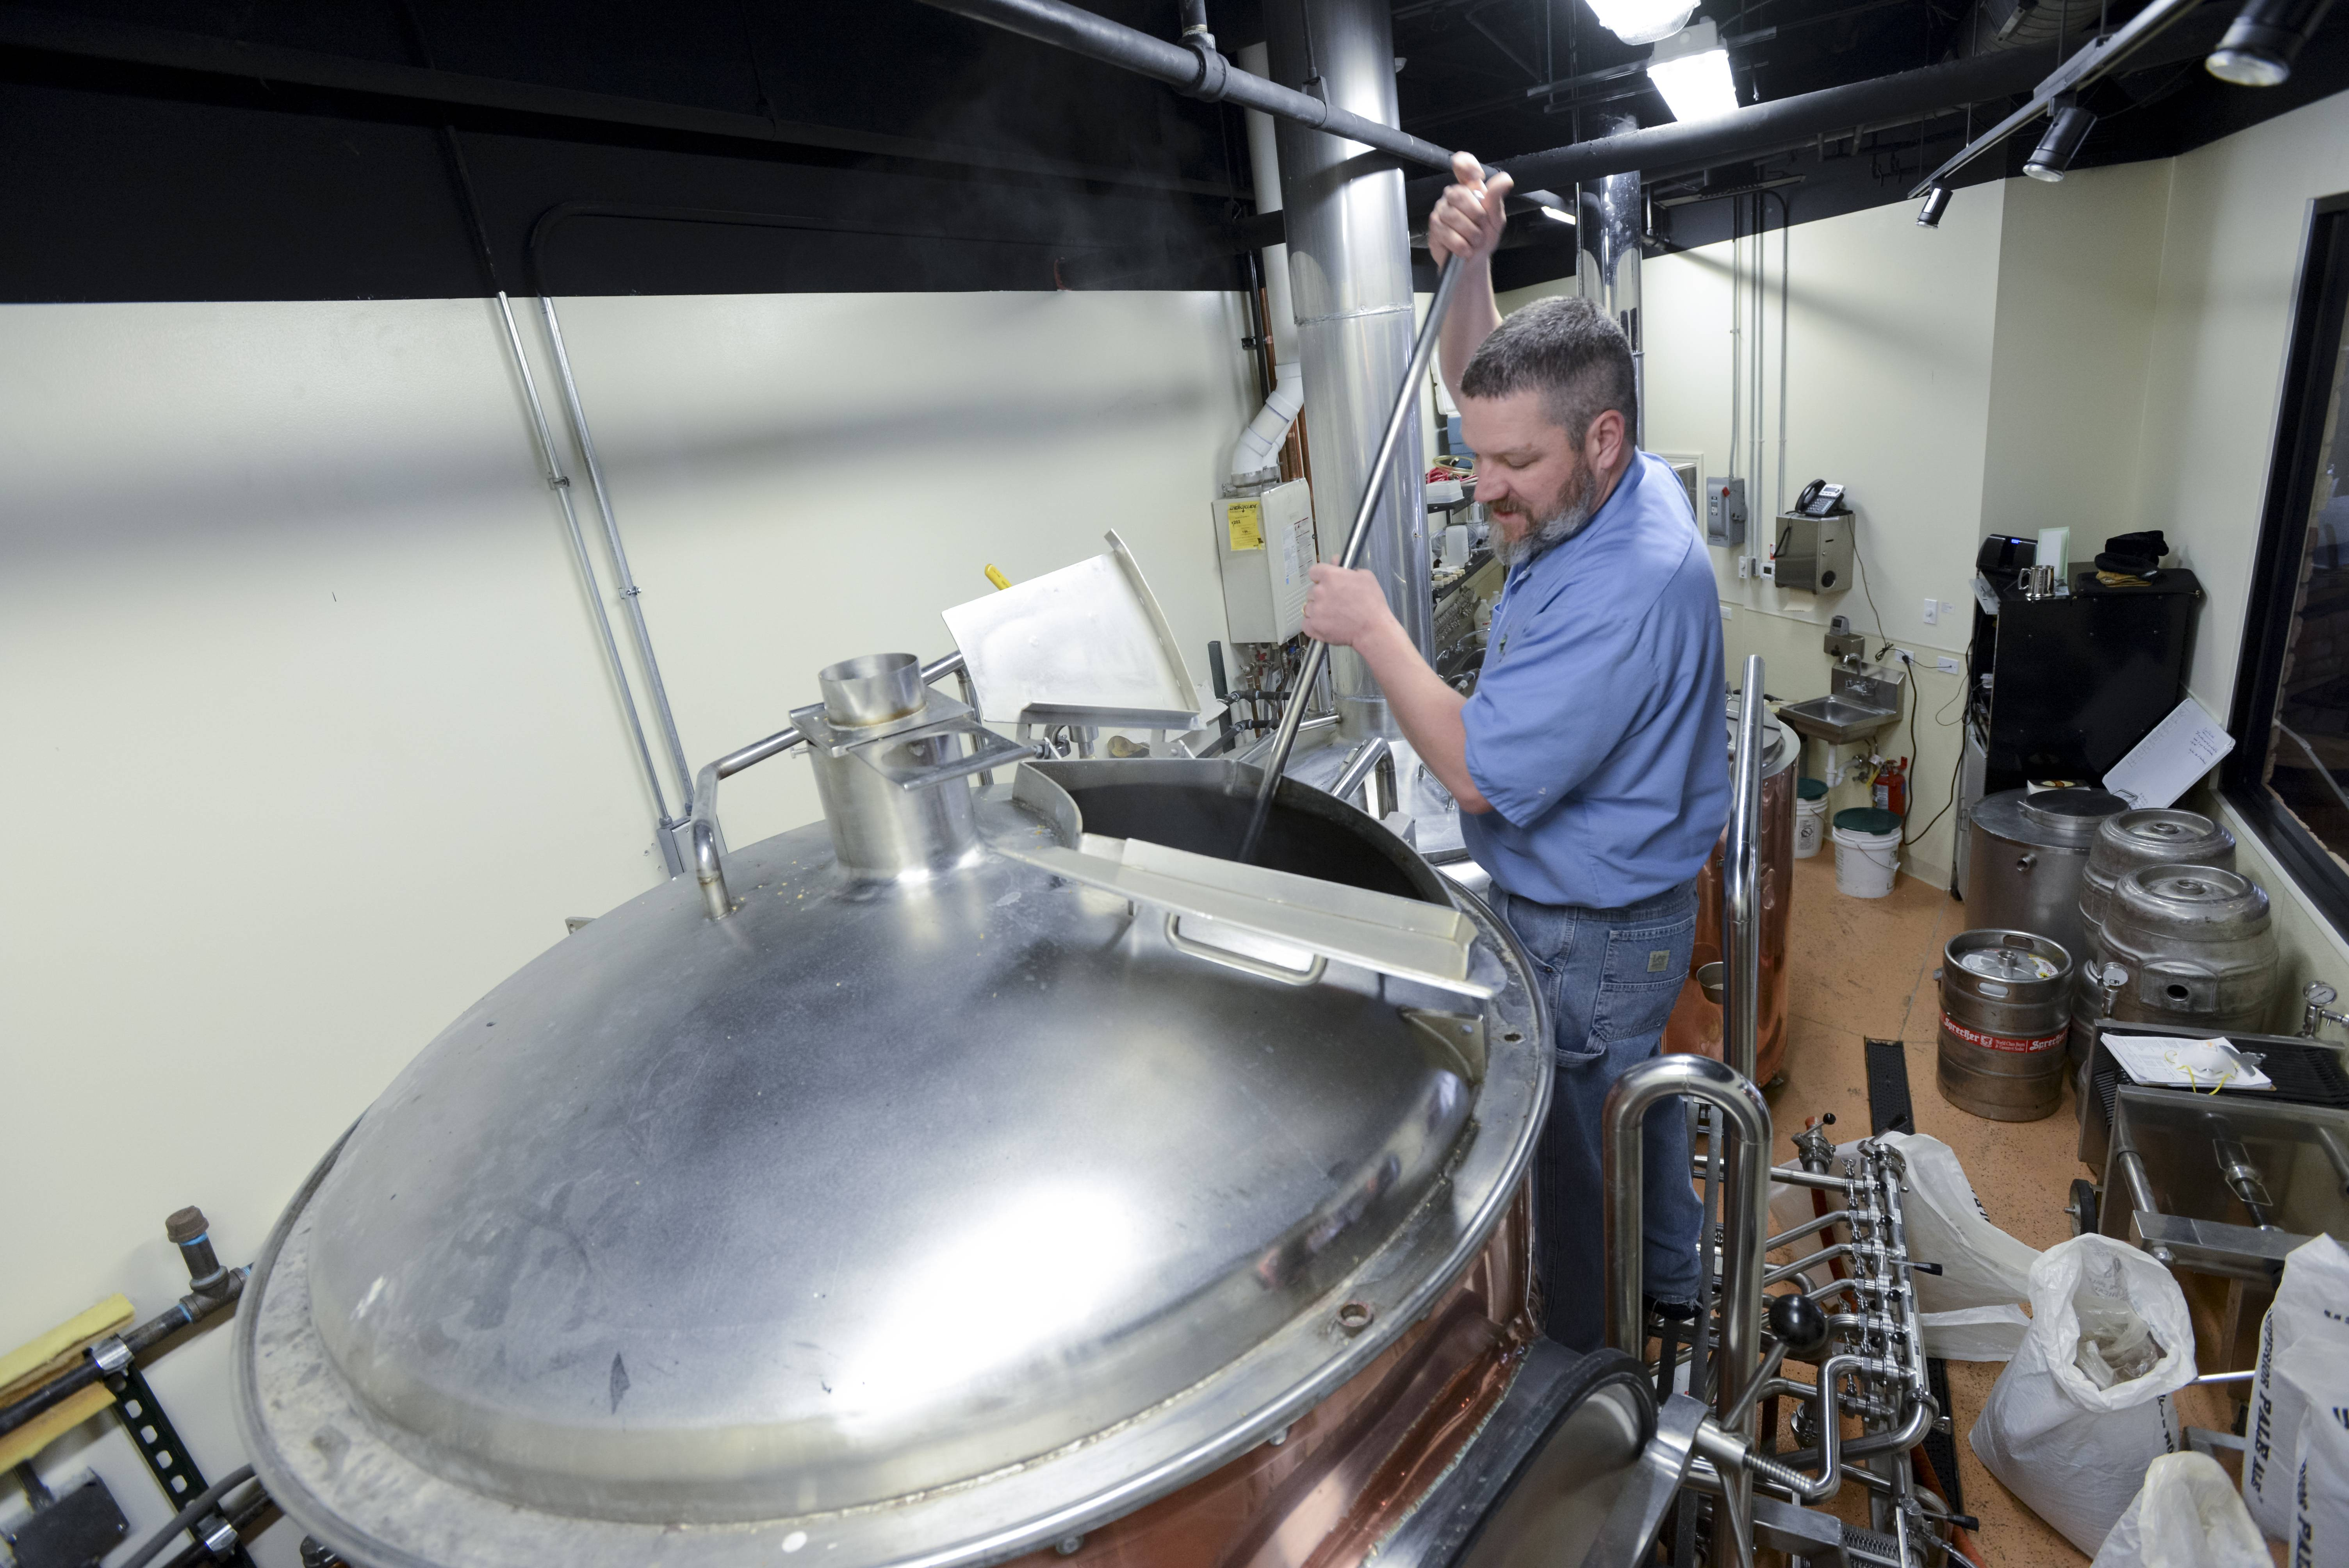 Brewmaster Ken McMullen stirs the mash as he brews up a batch of IBA, India Brown Ale, at the Hopvine Brewing Company in Aurora.